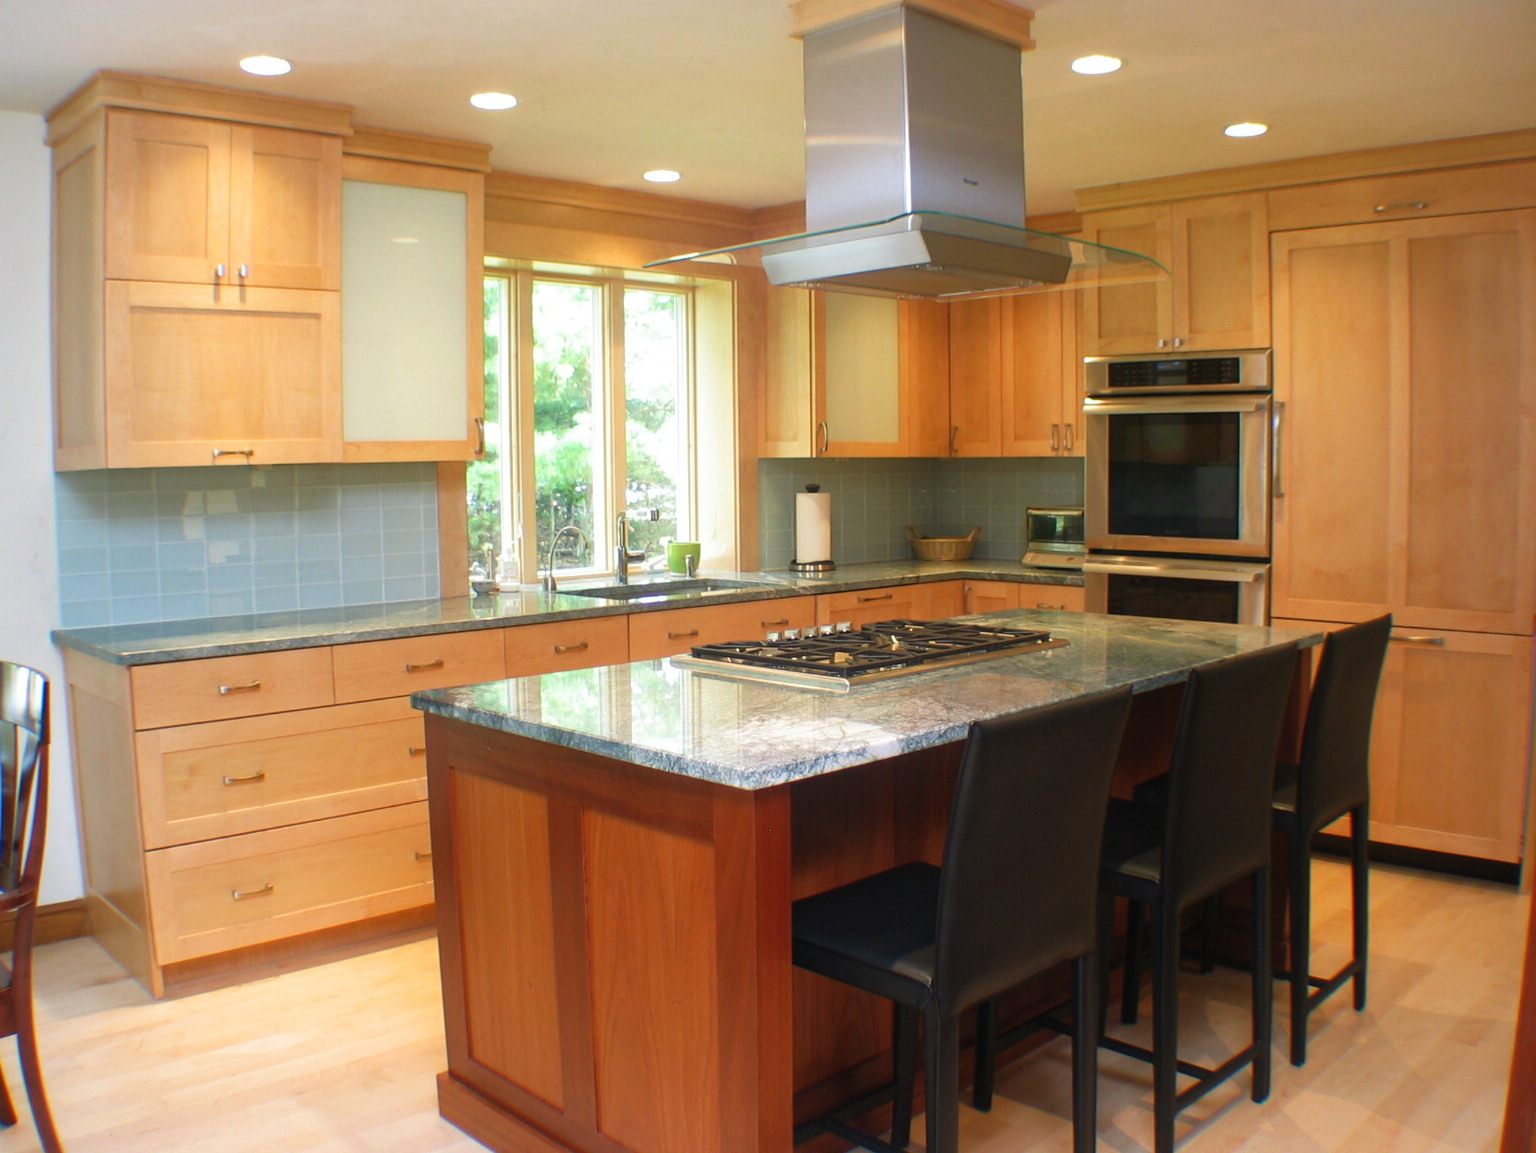 Custom Mahogany Cabinets - Marlborough MA